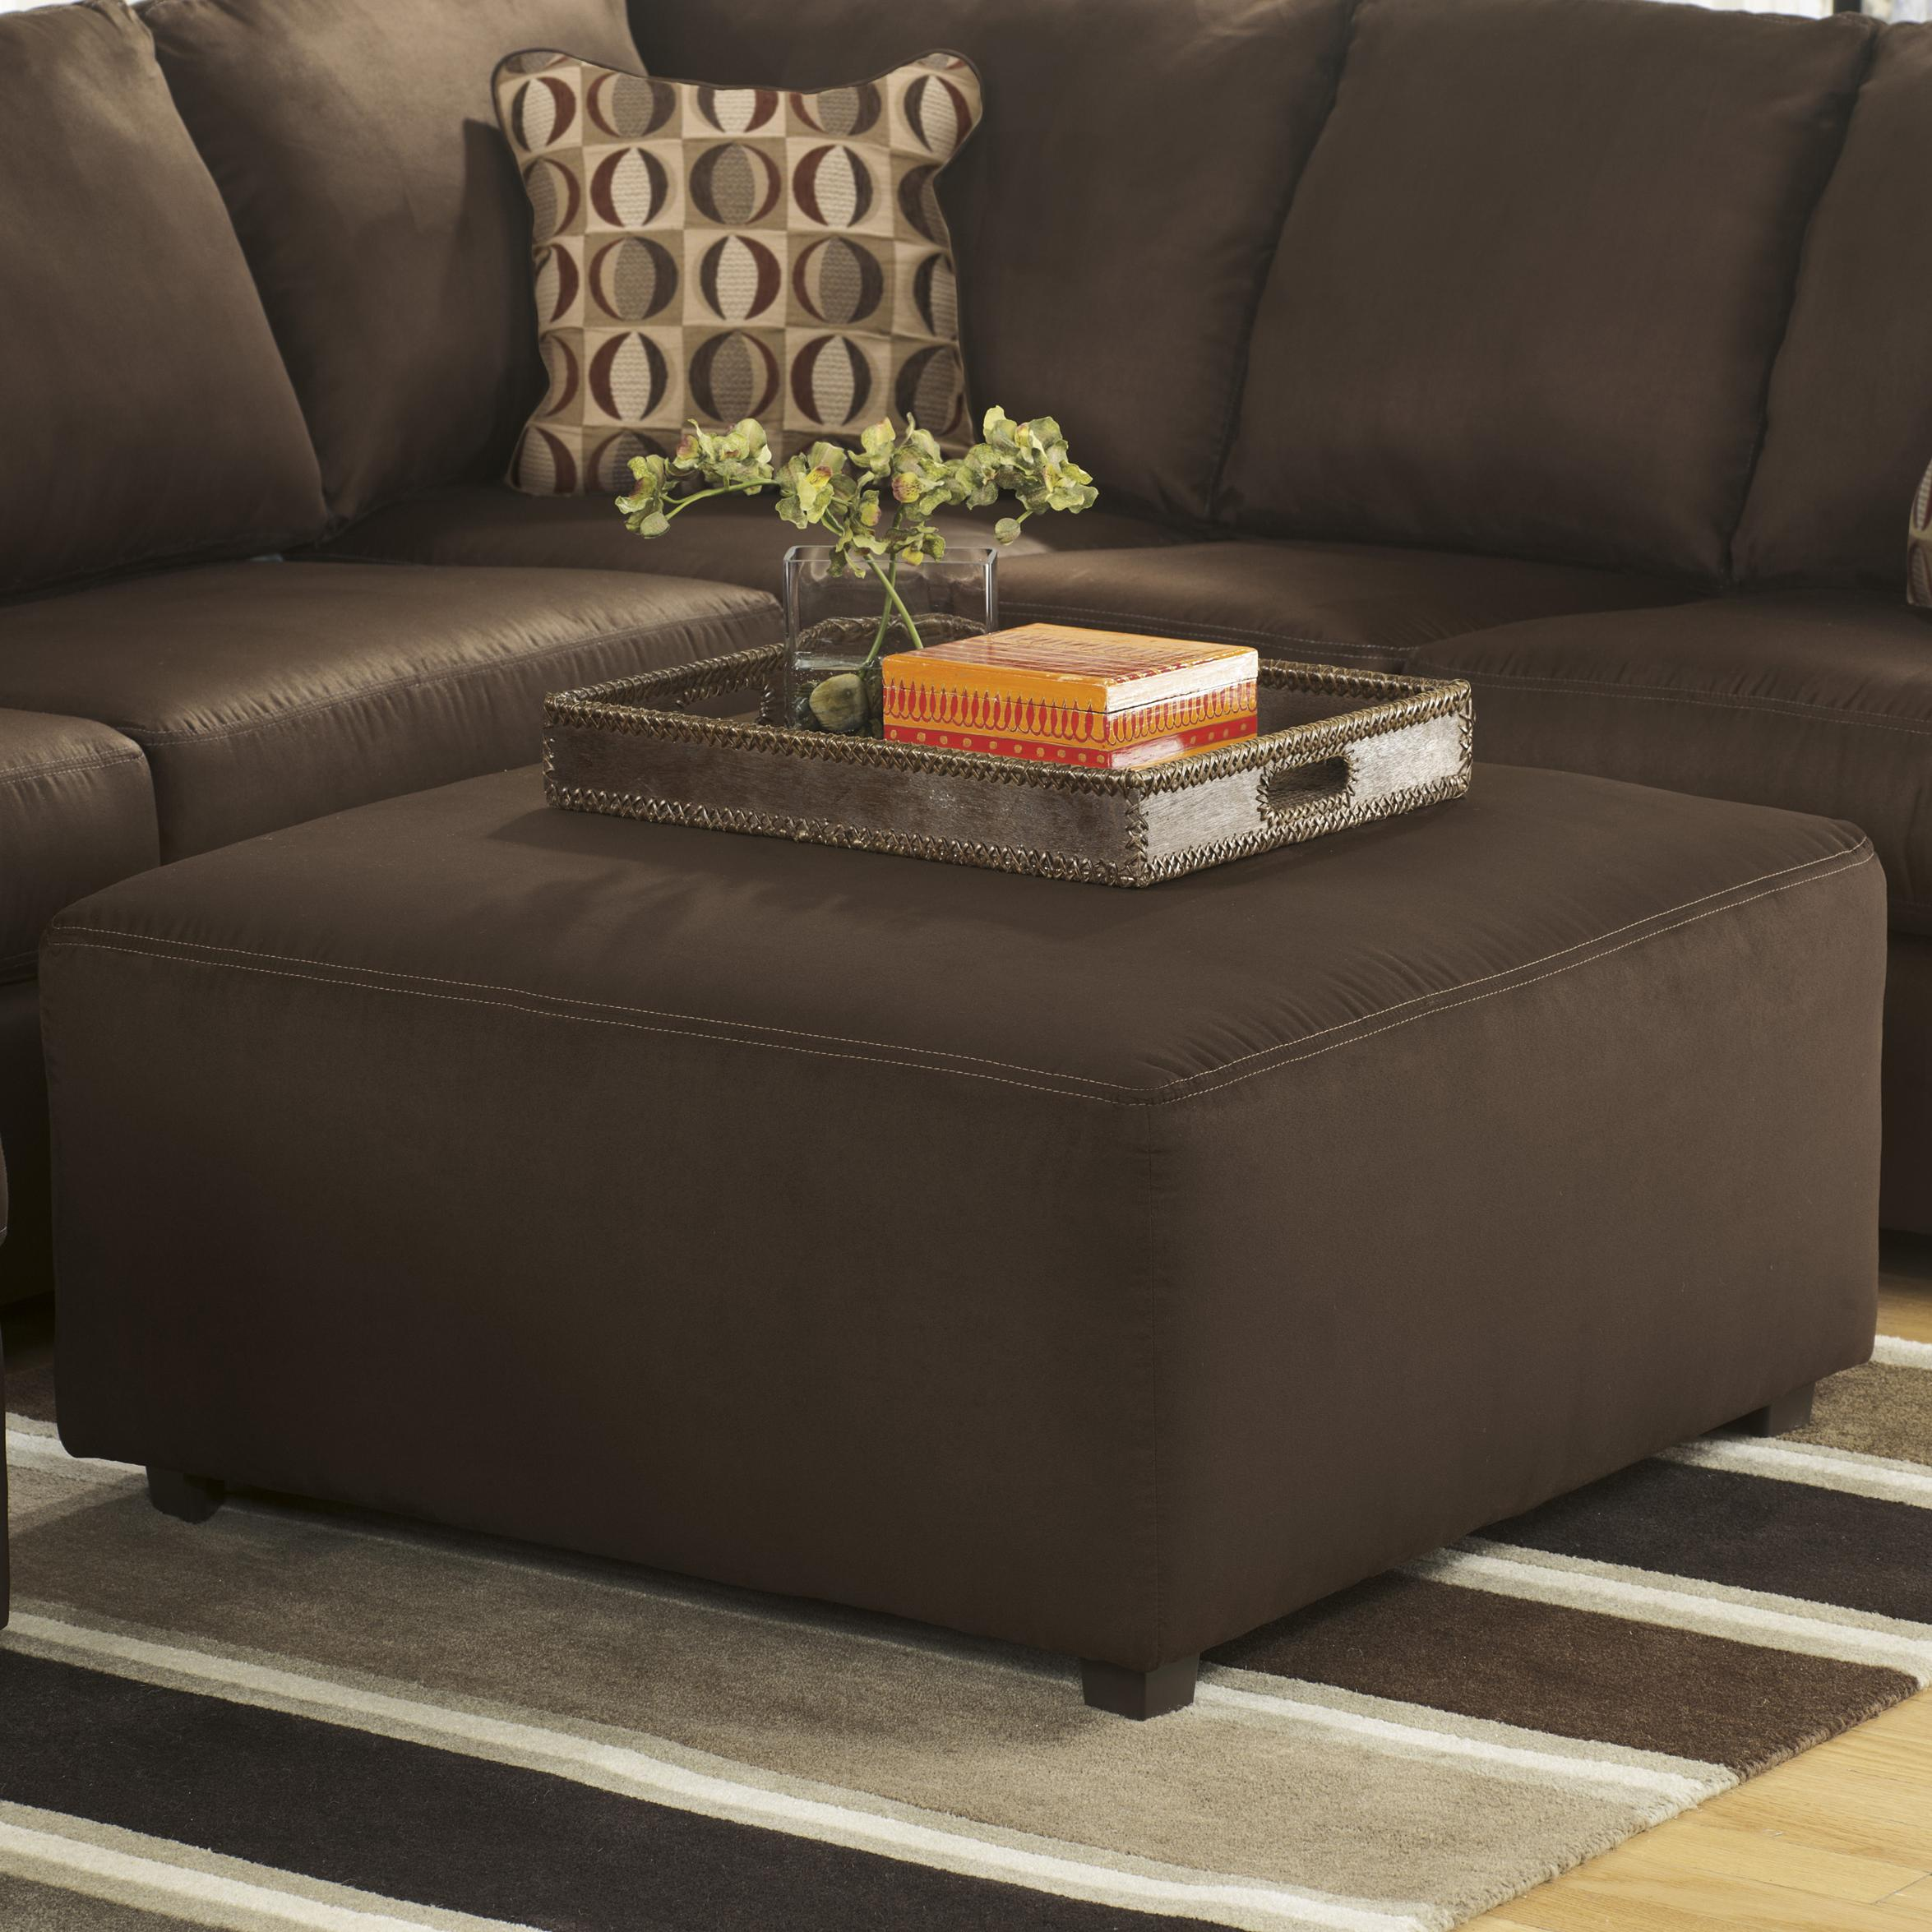 Signature Design by Ashley Cowan - Cafe Oversized Accent Ottoman - Item Number: 3070408